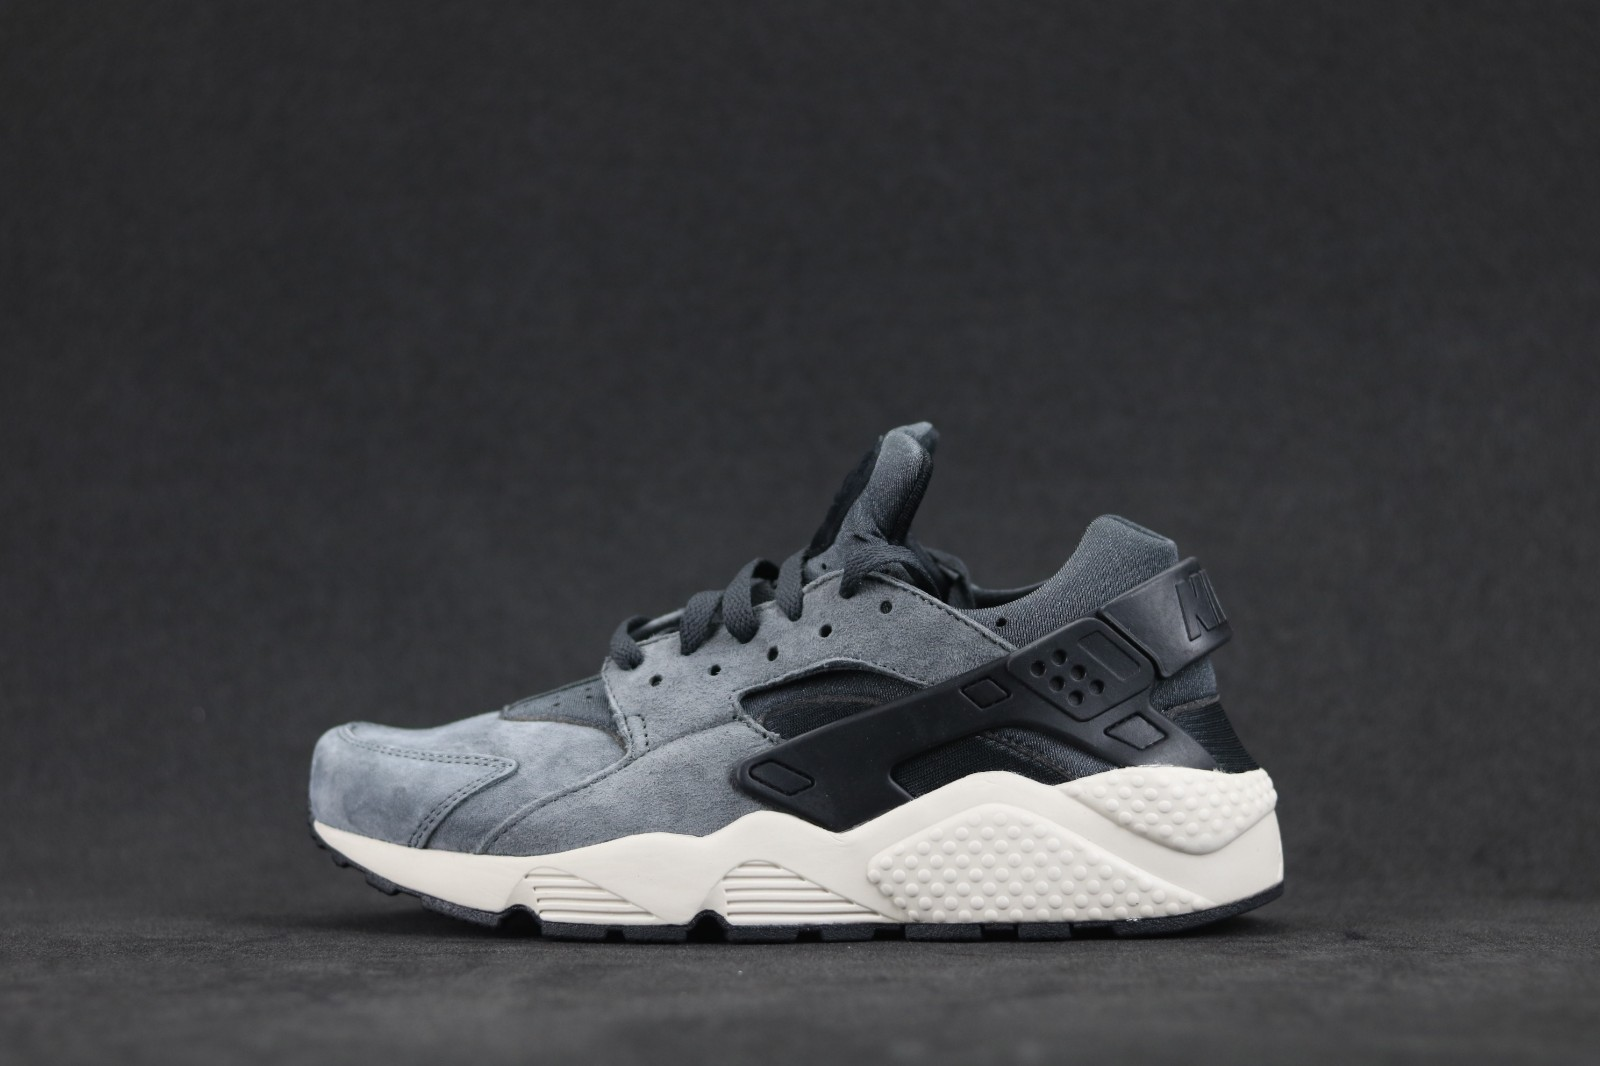 beb1a70aaeb5e Nike Air Huarache Run Premium Dark Grey 704830-016 - Sepsport